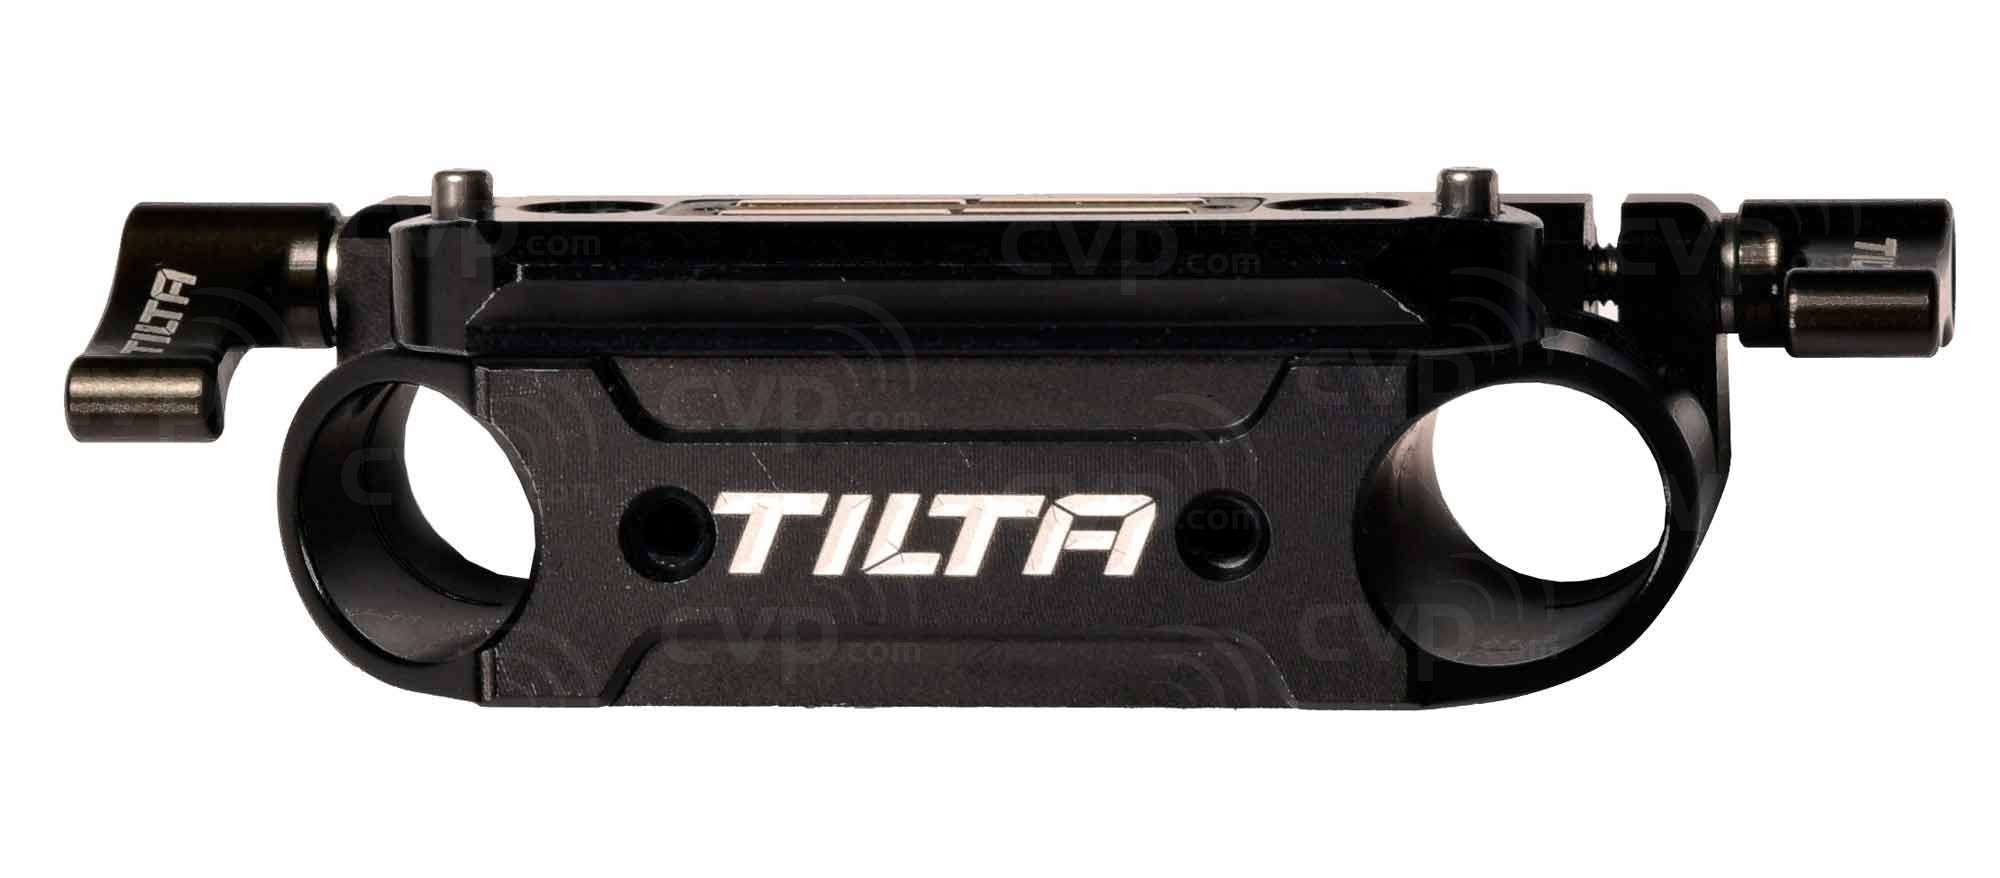 Tilta ESR-TR01 (ESRTR01) 15mm Top Rod Adapter Compatible with the